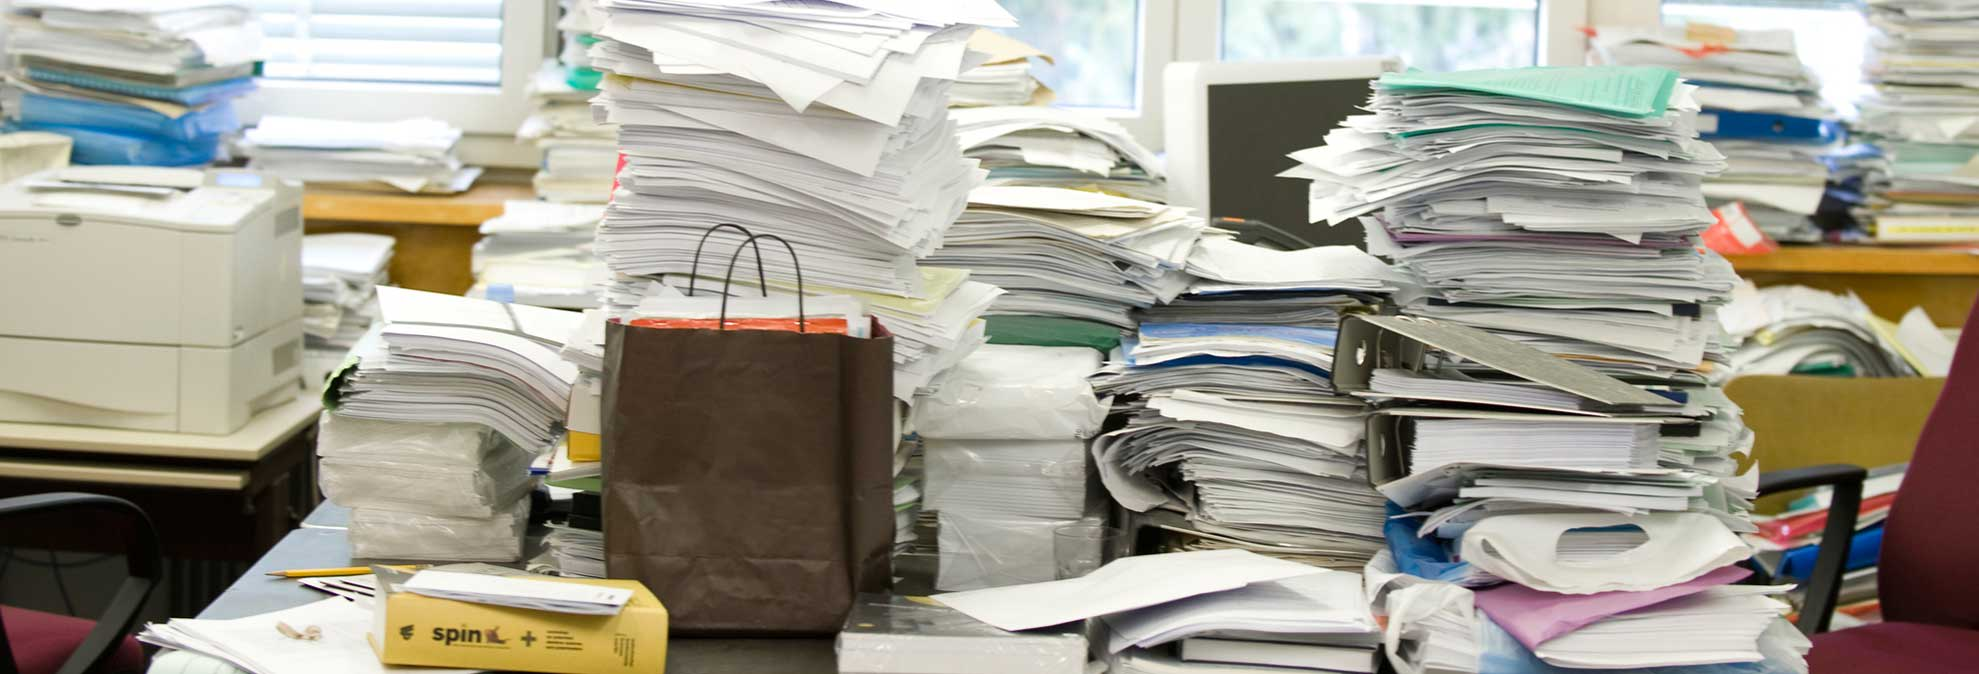 Mobile Scanner Apps Can Help Eliminate Paper Piles